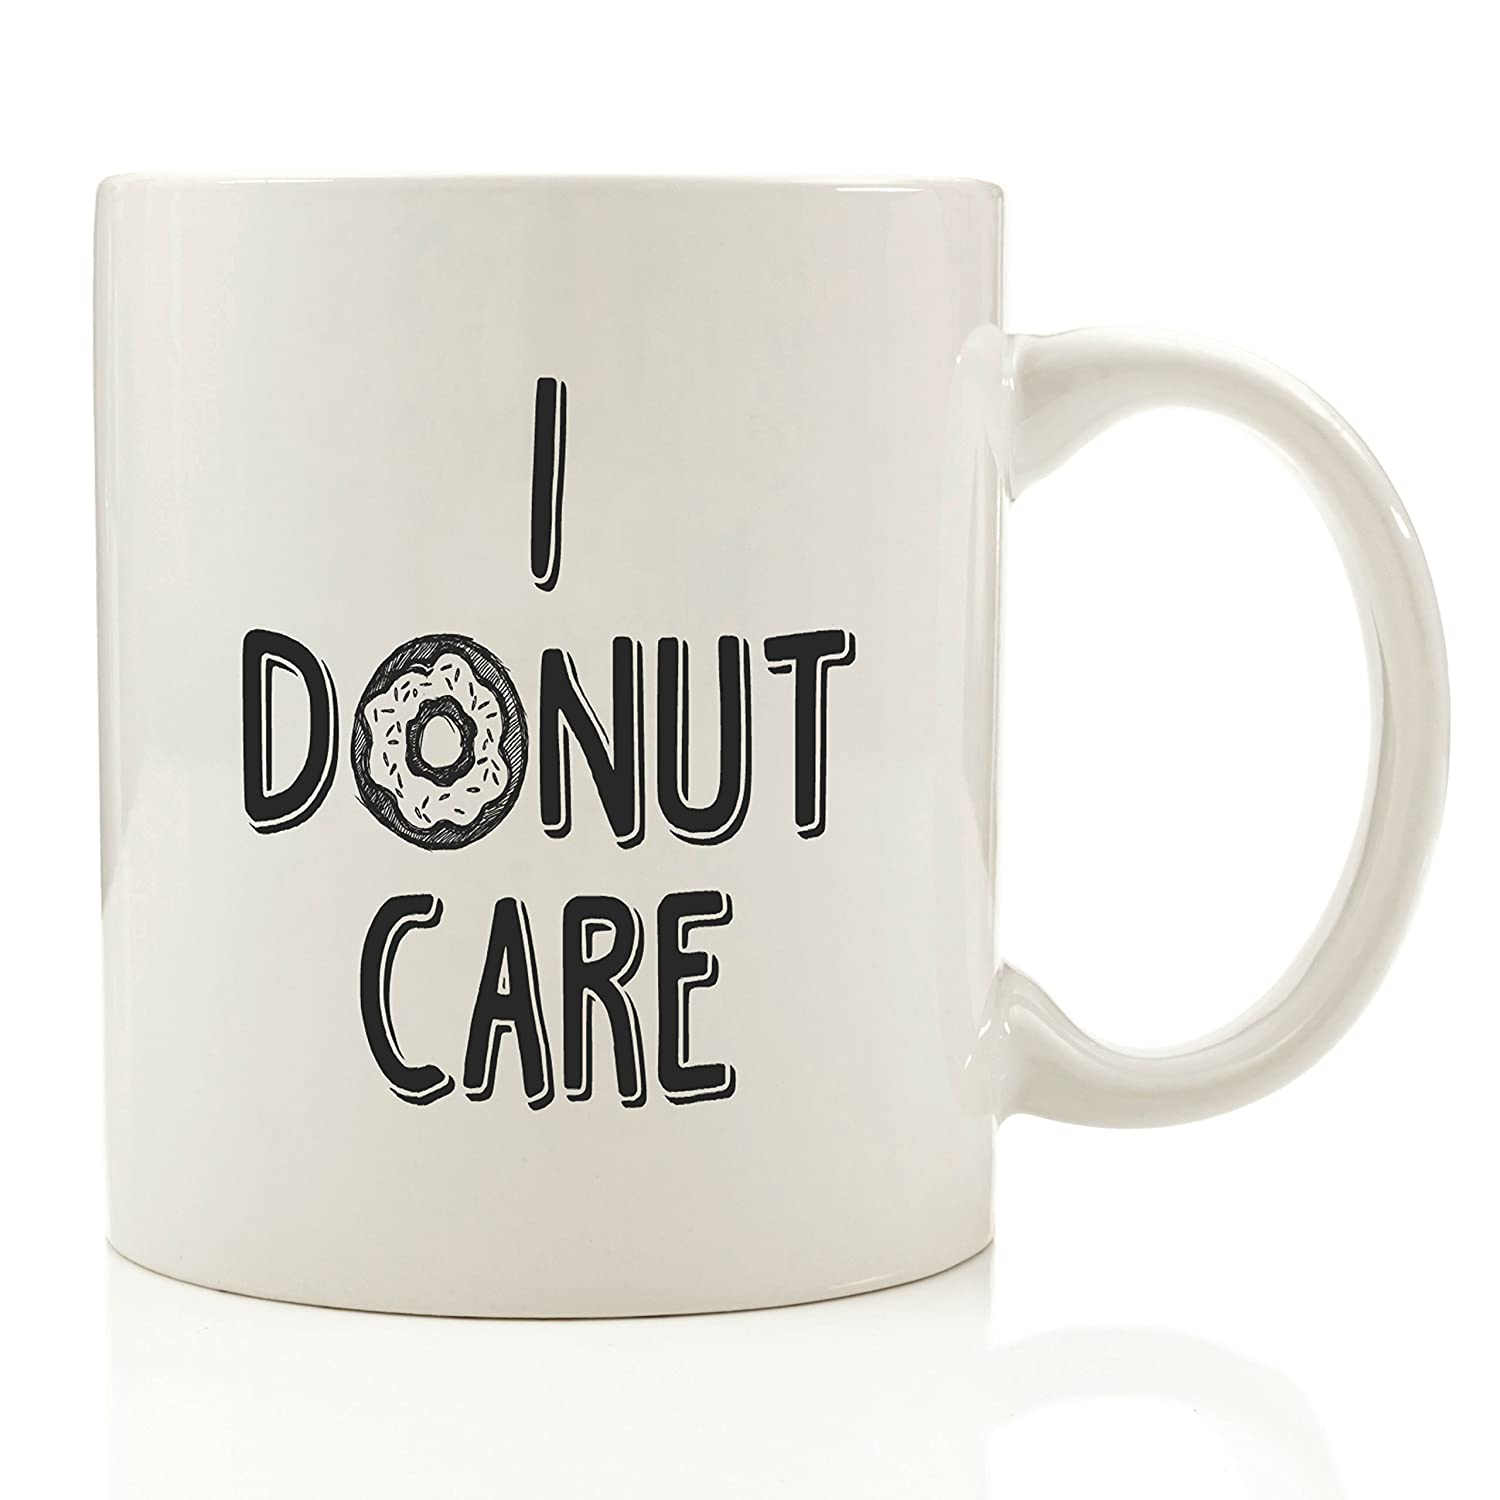 I Donut Care Funny Coffee Mug – Mother's Day Gifts for Mom – Cool Birthday Present Idea For Coworkers, Men & Women, Him or Her, Dad, Brother, Sister, Boyfriend, Girlfriend, Husband or Wife